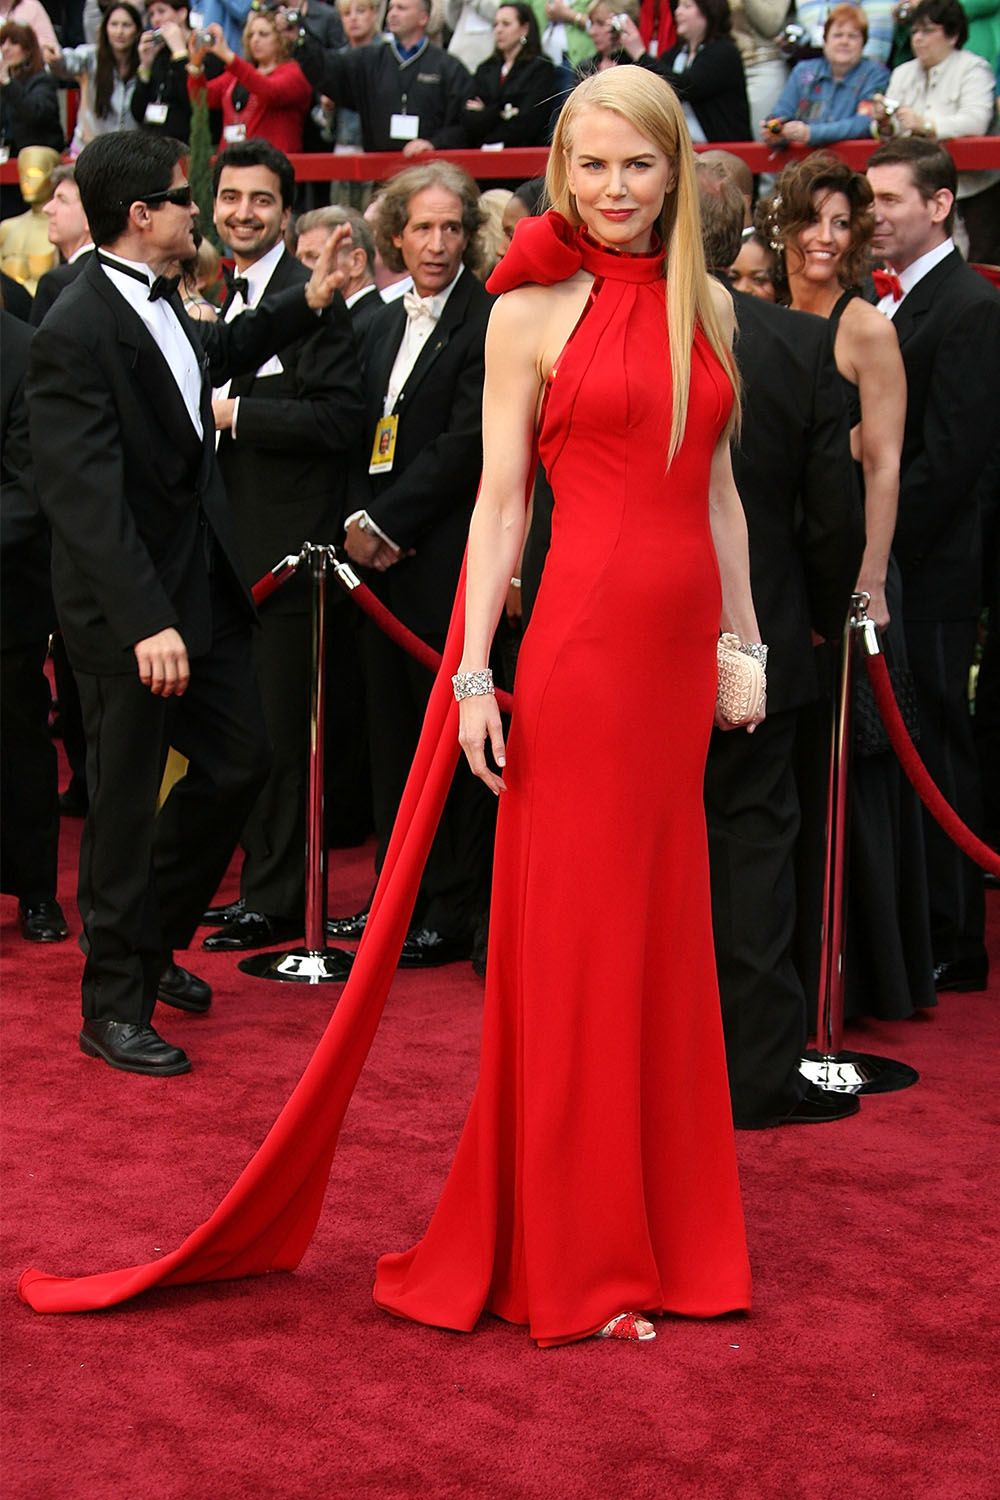 50 Best Oscar Dresses Of All Time Red Carpet From The Academy Awards